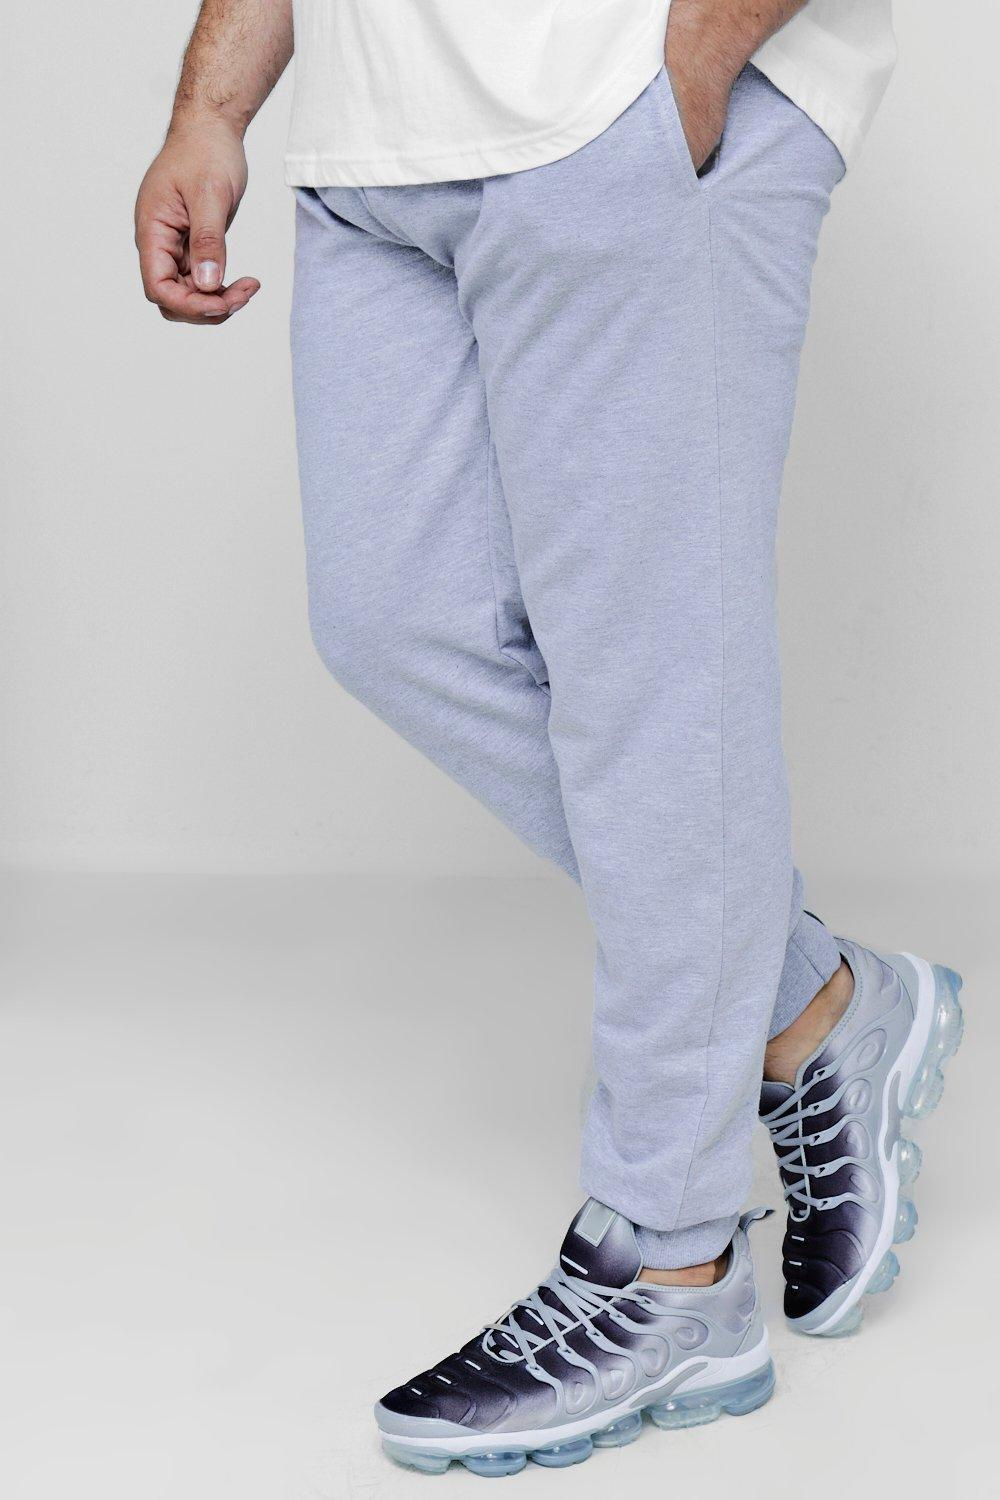 d02f78c3a4db4c Gallery. Previously sold at: boohooman · Men's Skinny Joggers ...